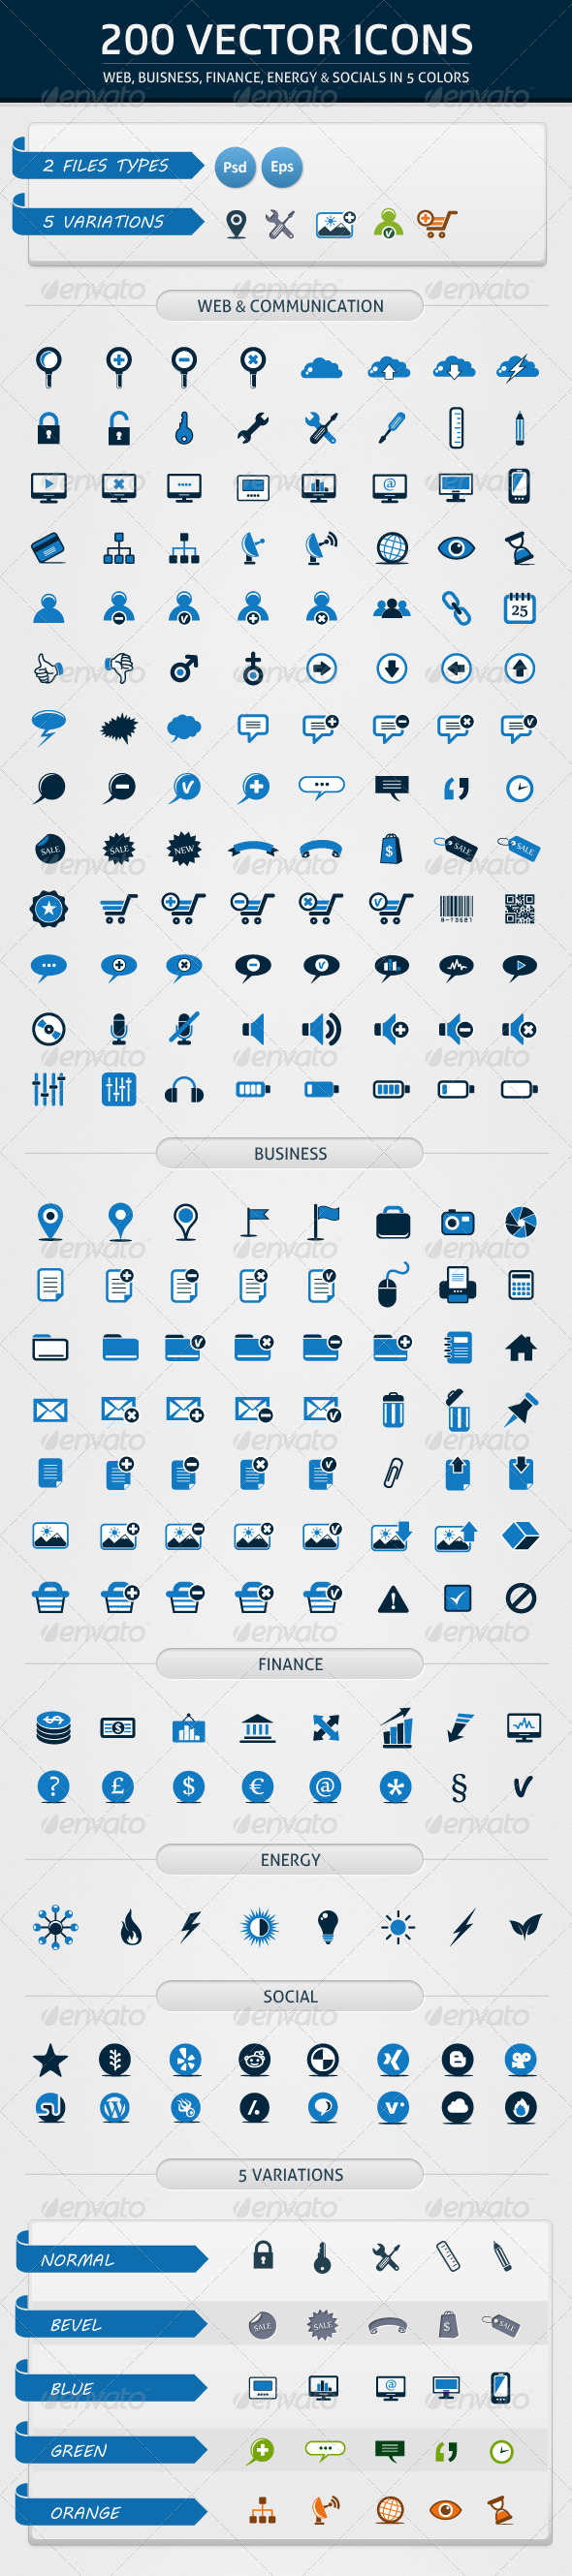 200 Vector Icons in 5 Colors